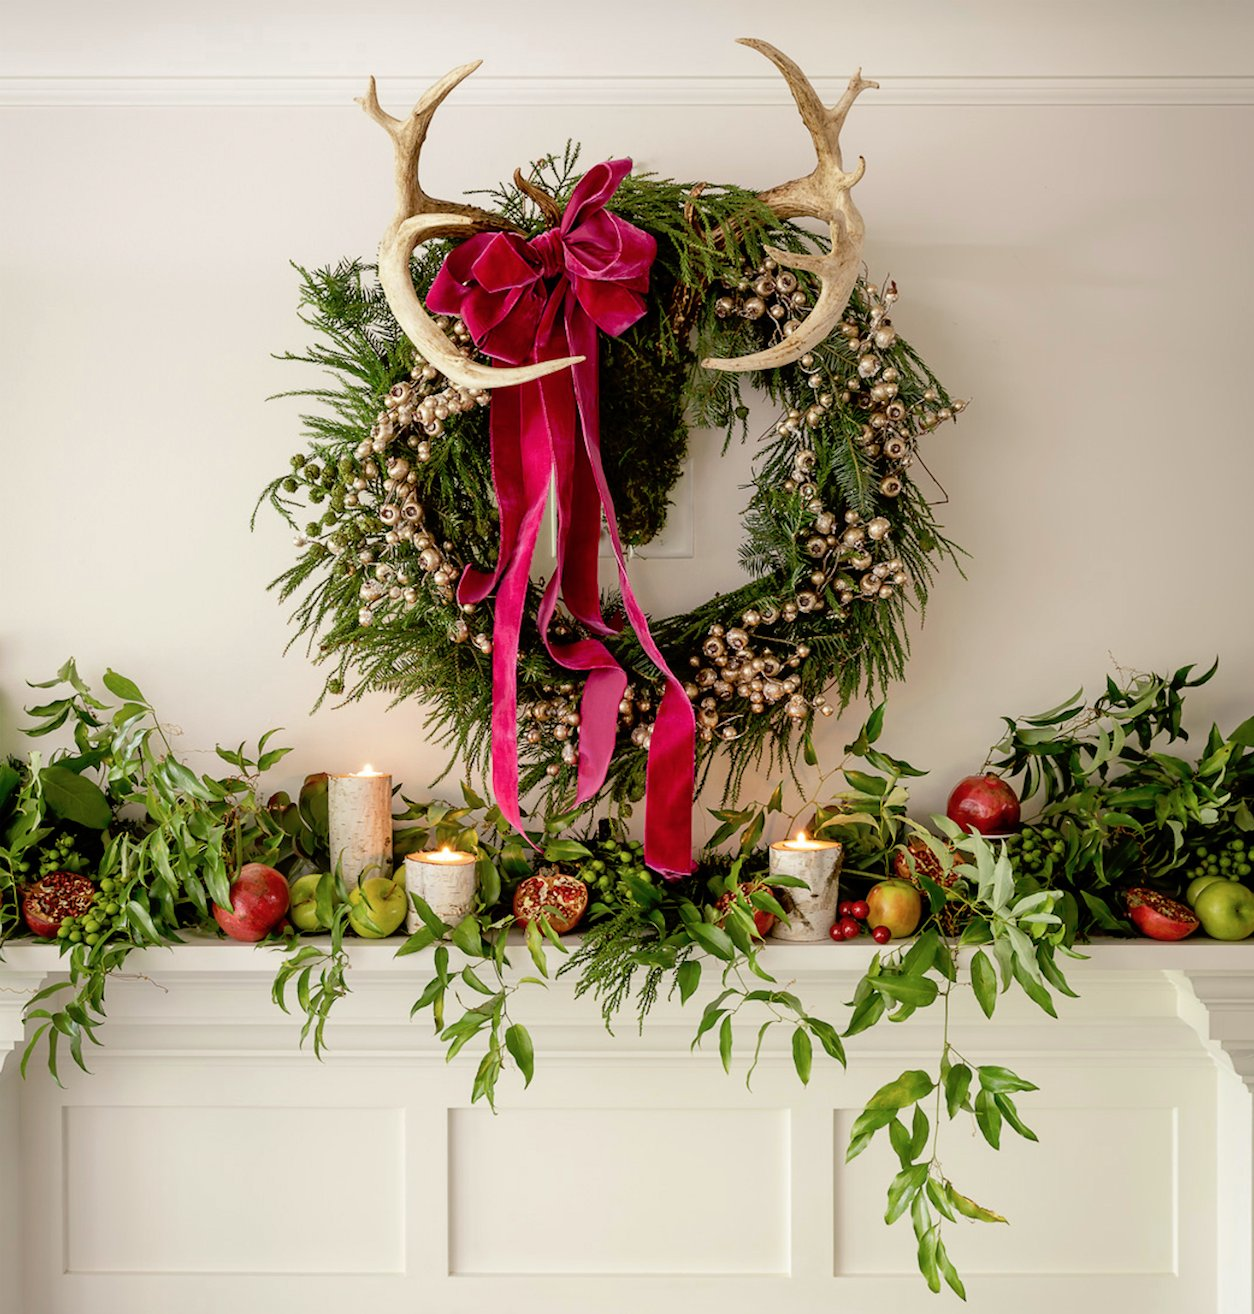 The mantle features local foliage, pomegranates, and apples.